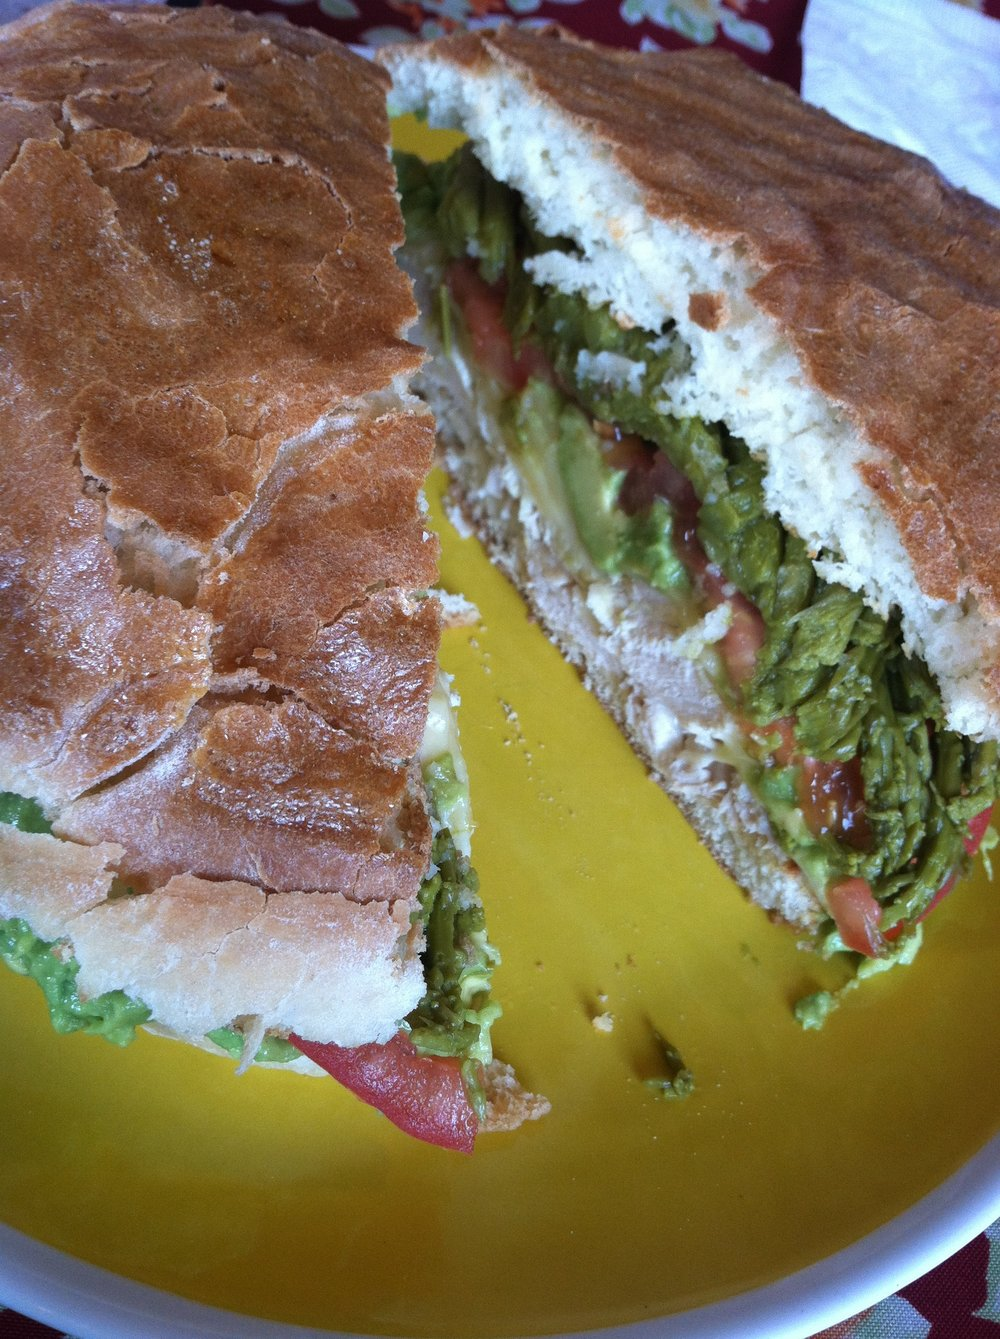 sandwich from cafe immigrante punta arenas, chile